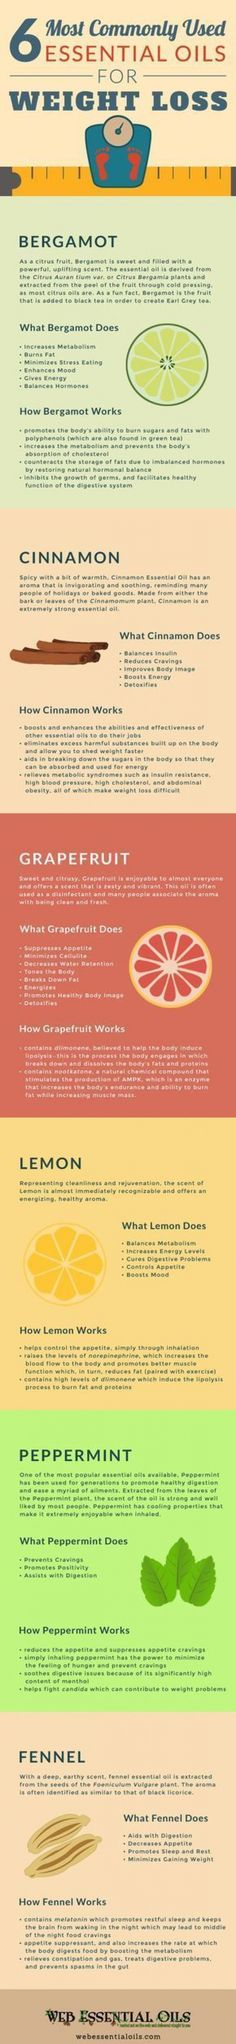 essential oils for weight loss infographic #fatlossdiet Essential Oil Uses, Doterra Essential Oils, Essential Oil Diffuser, Doterra Diffuser, Young Living Oils, Young Living Essential Oils, Melaleuca, Oil Diffuser Benefits, Corps Parfait